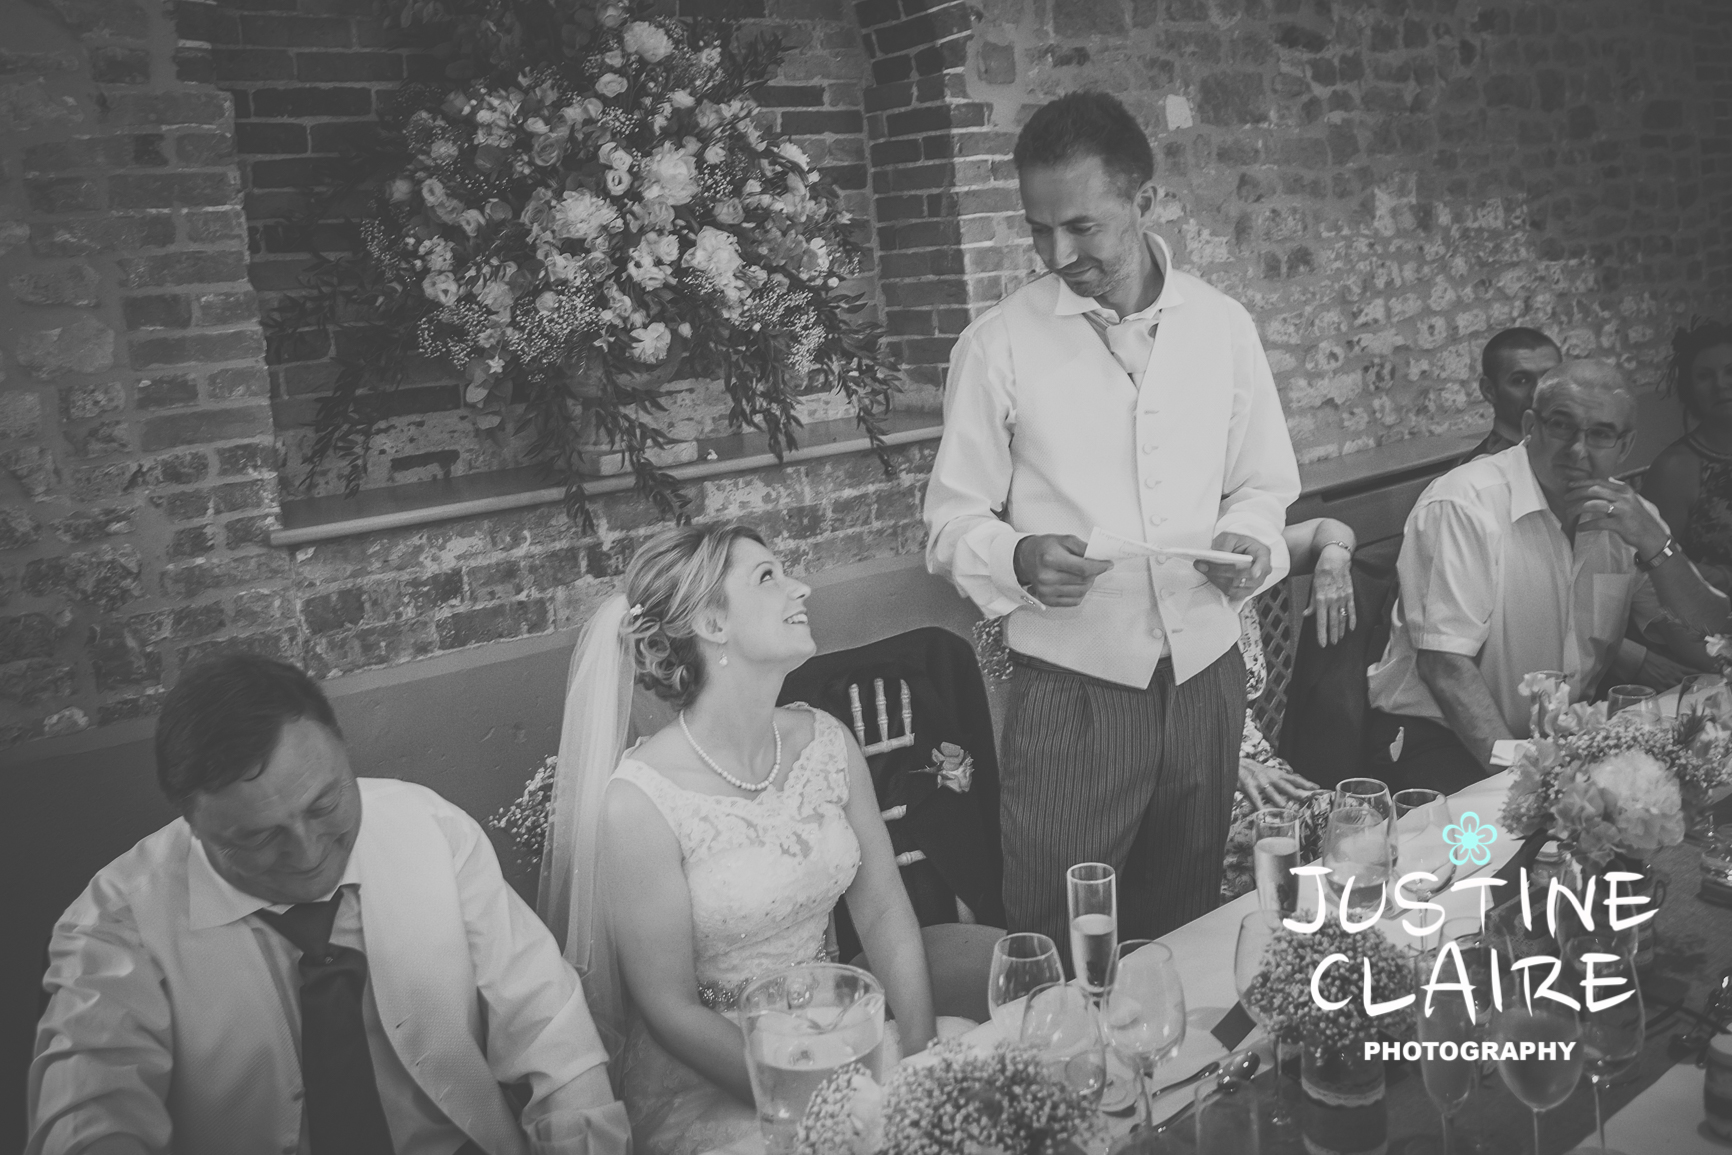 The walled garden Codray wedding Photographers Midhurst Sussex3.jpg